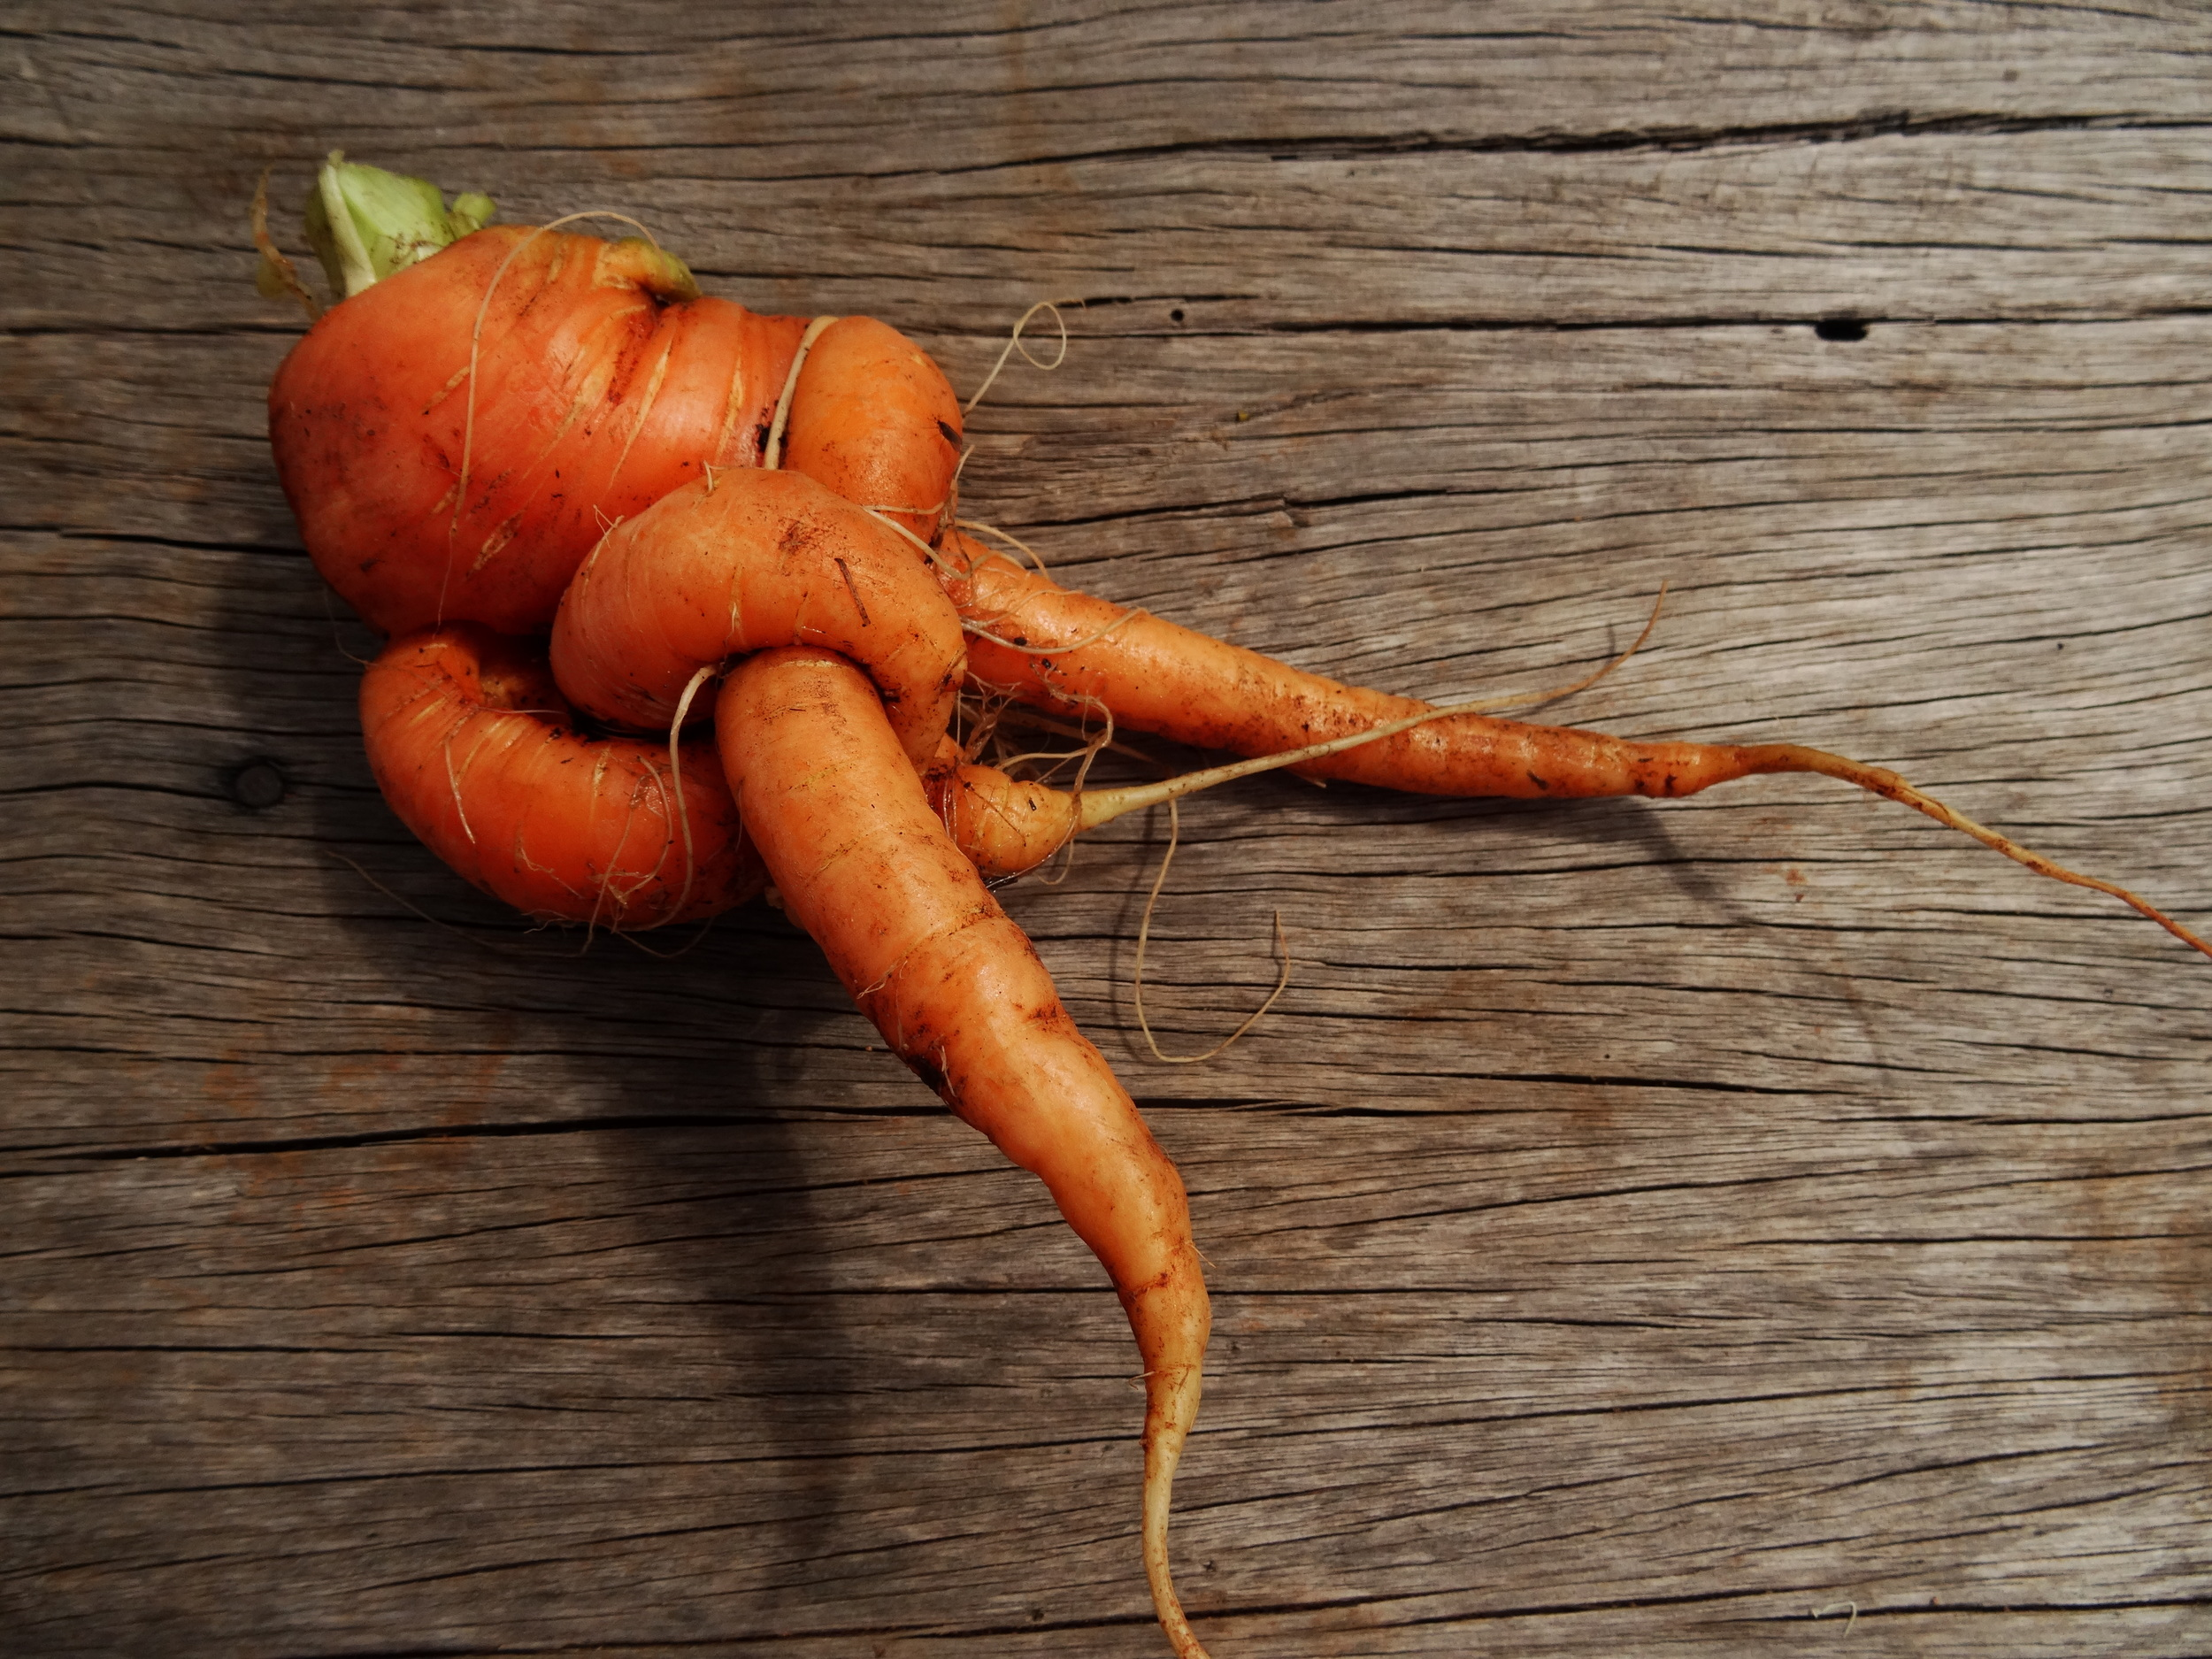 twisted carrot.JPG